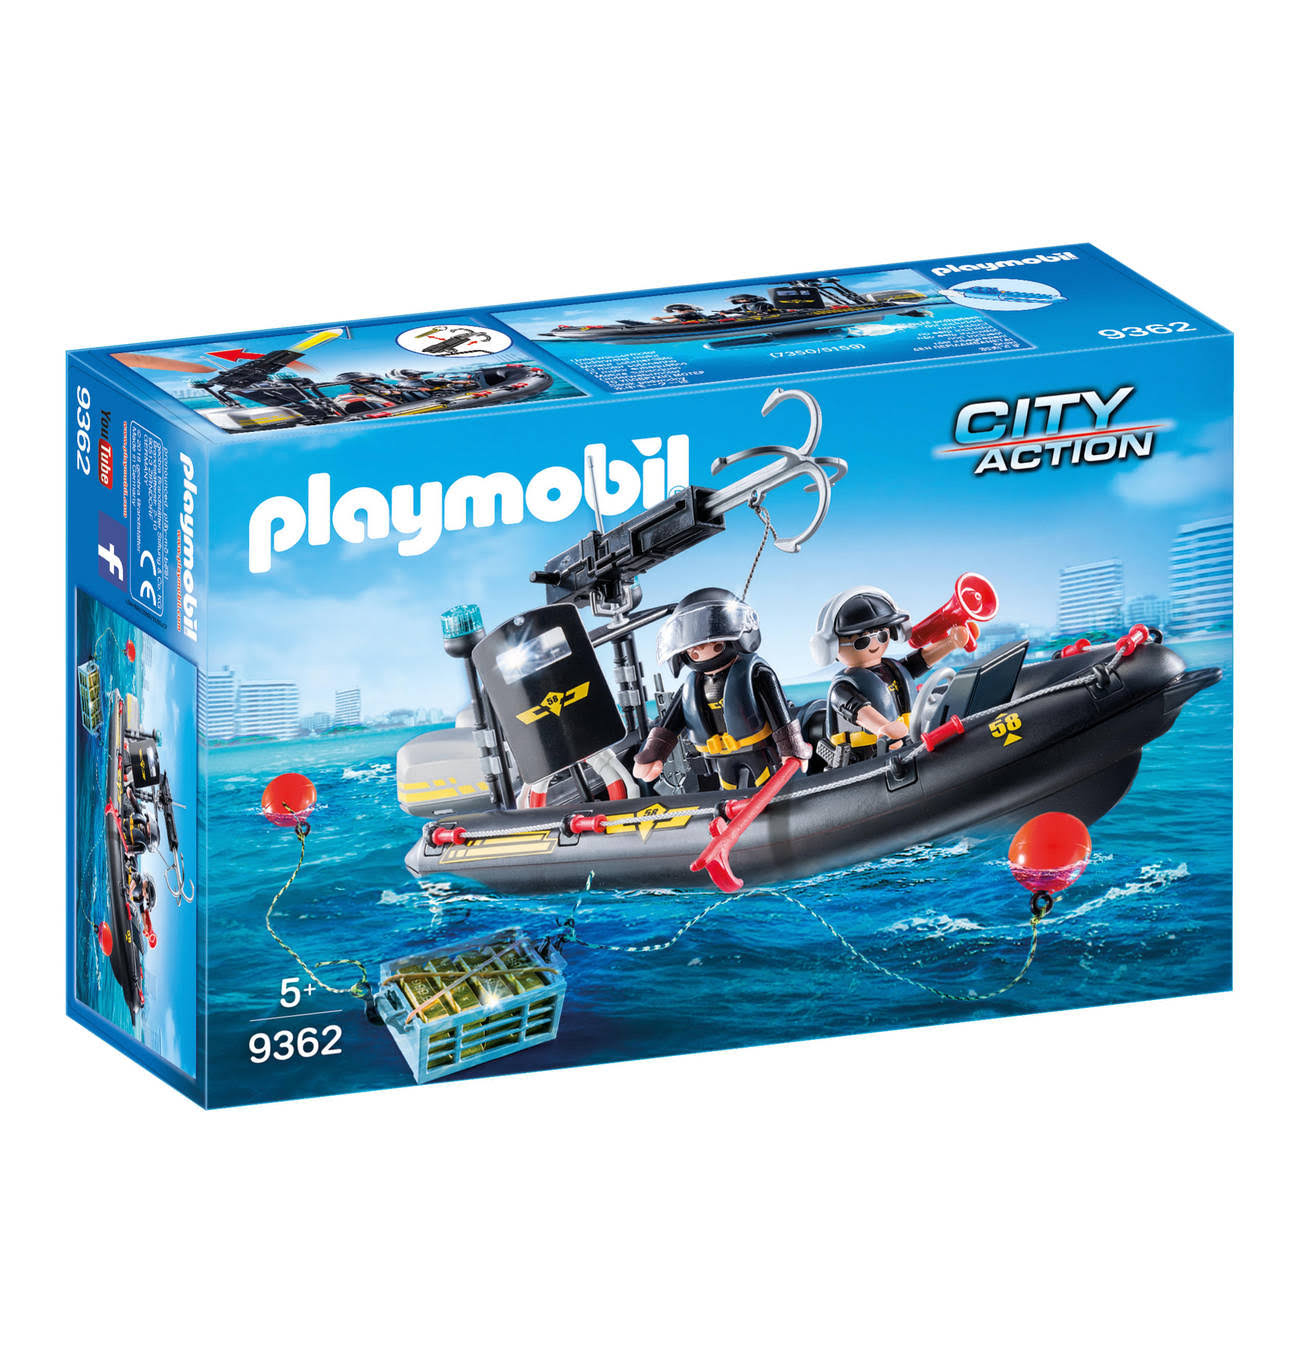 Playmobil City Action Tactical Unit SWAT Boat Playset